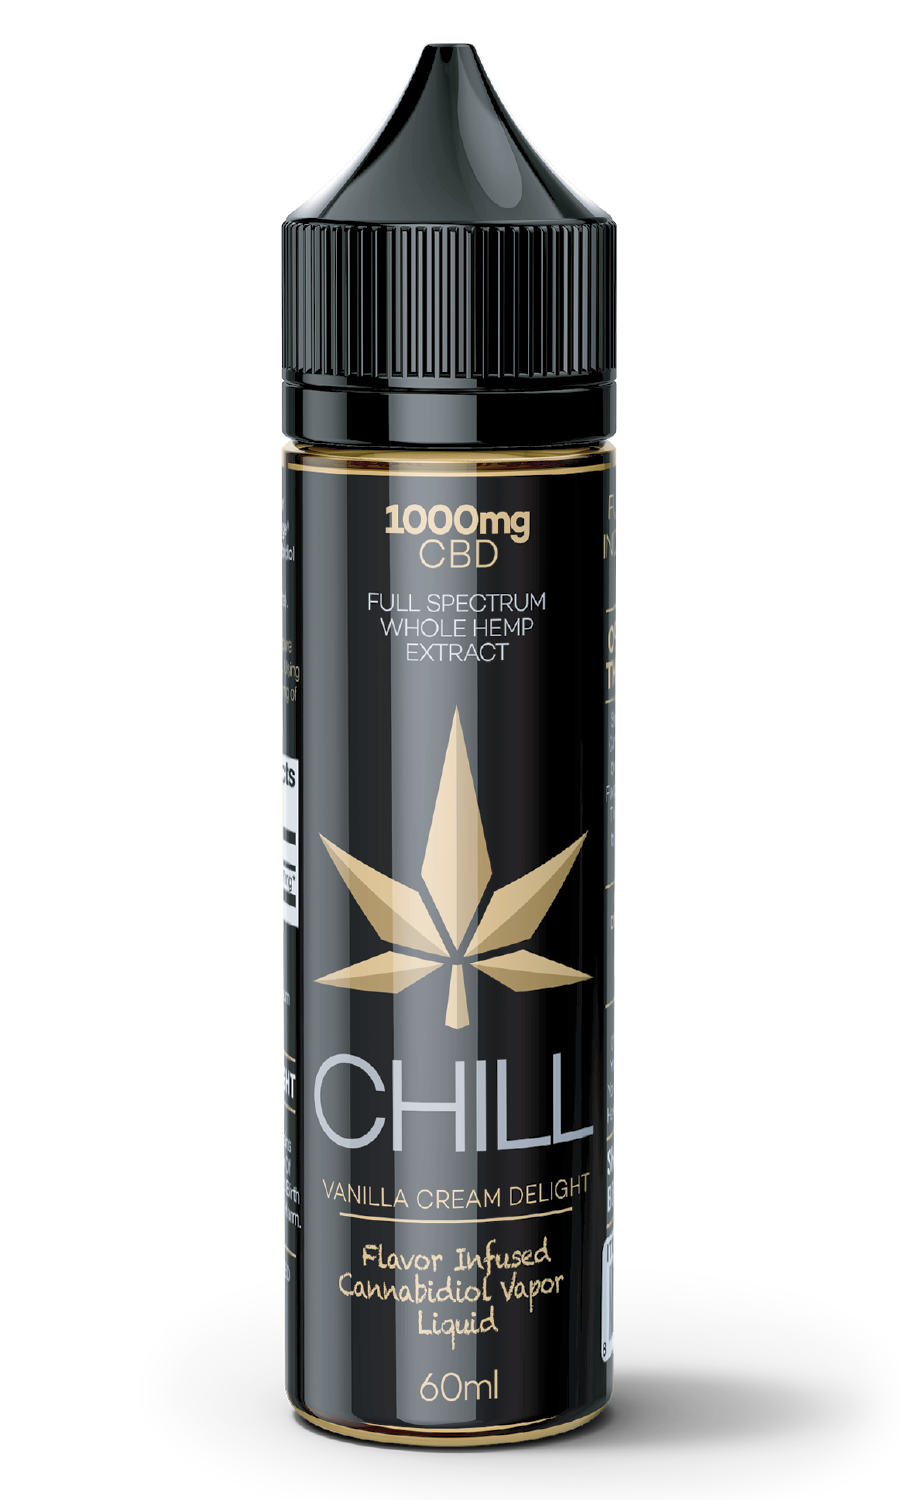 Chill CBD Vapor Liquid